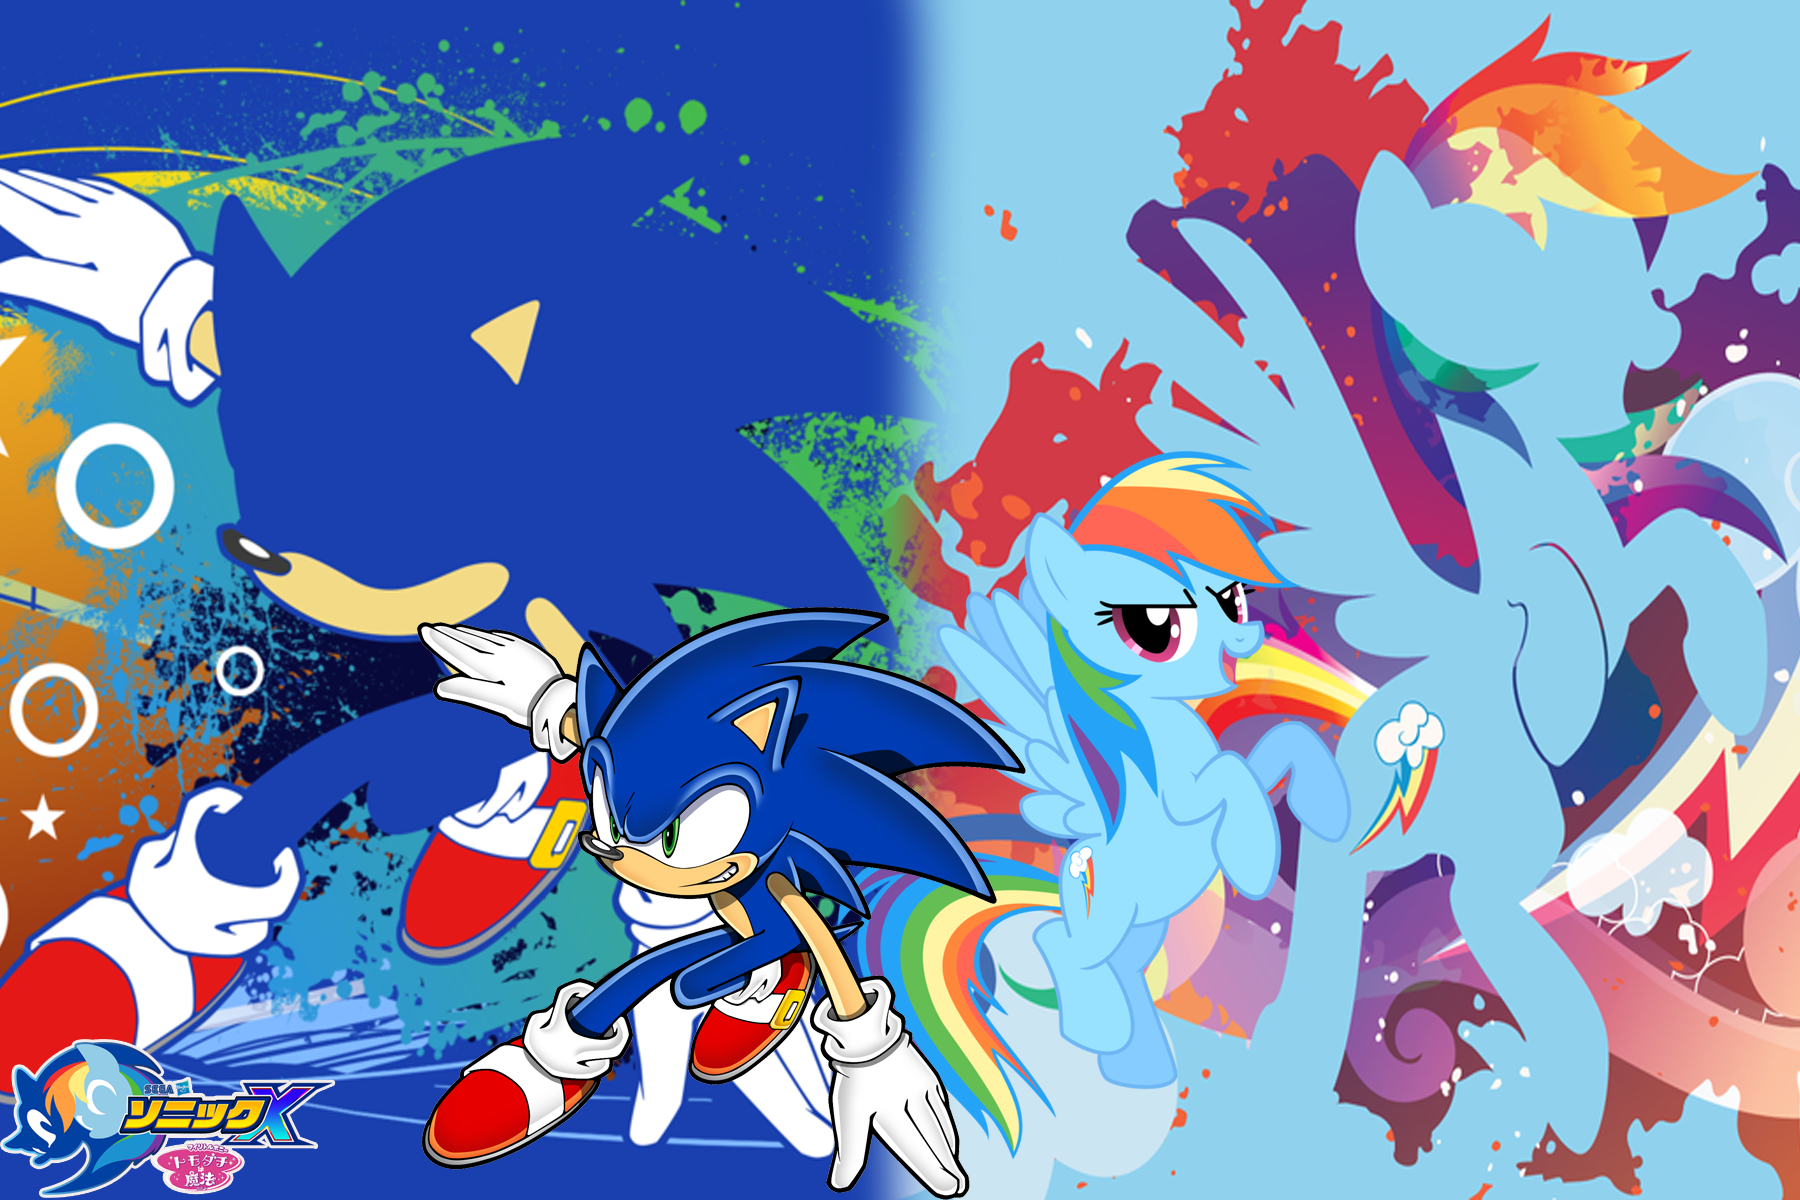 sonic and my little pony new wallpapers 1trungtranhaitrung on